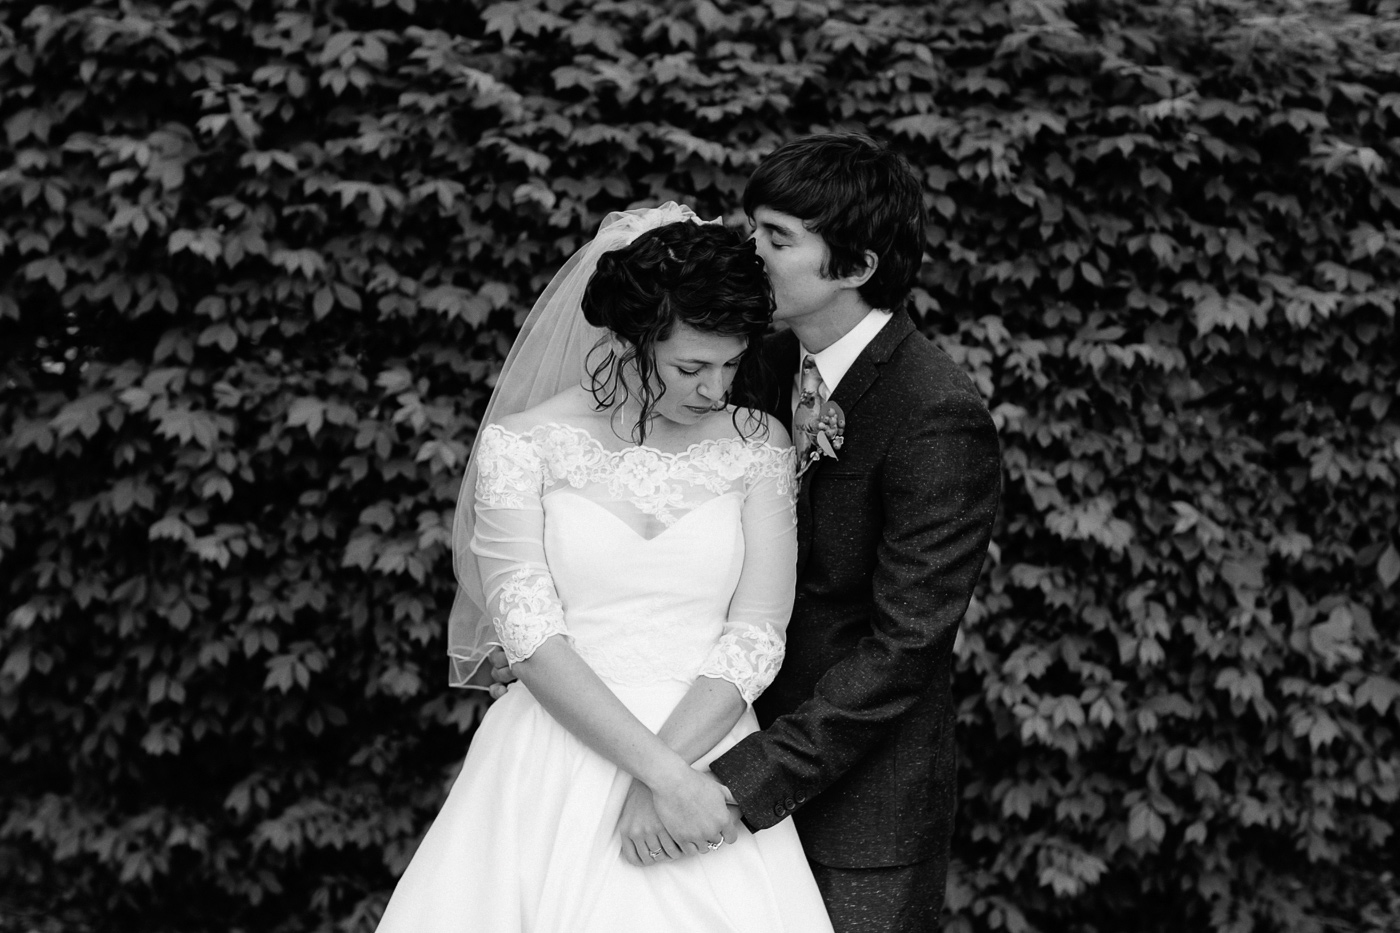 Bride and groom black and white with leaves